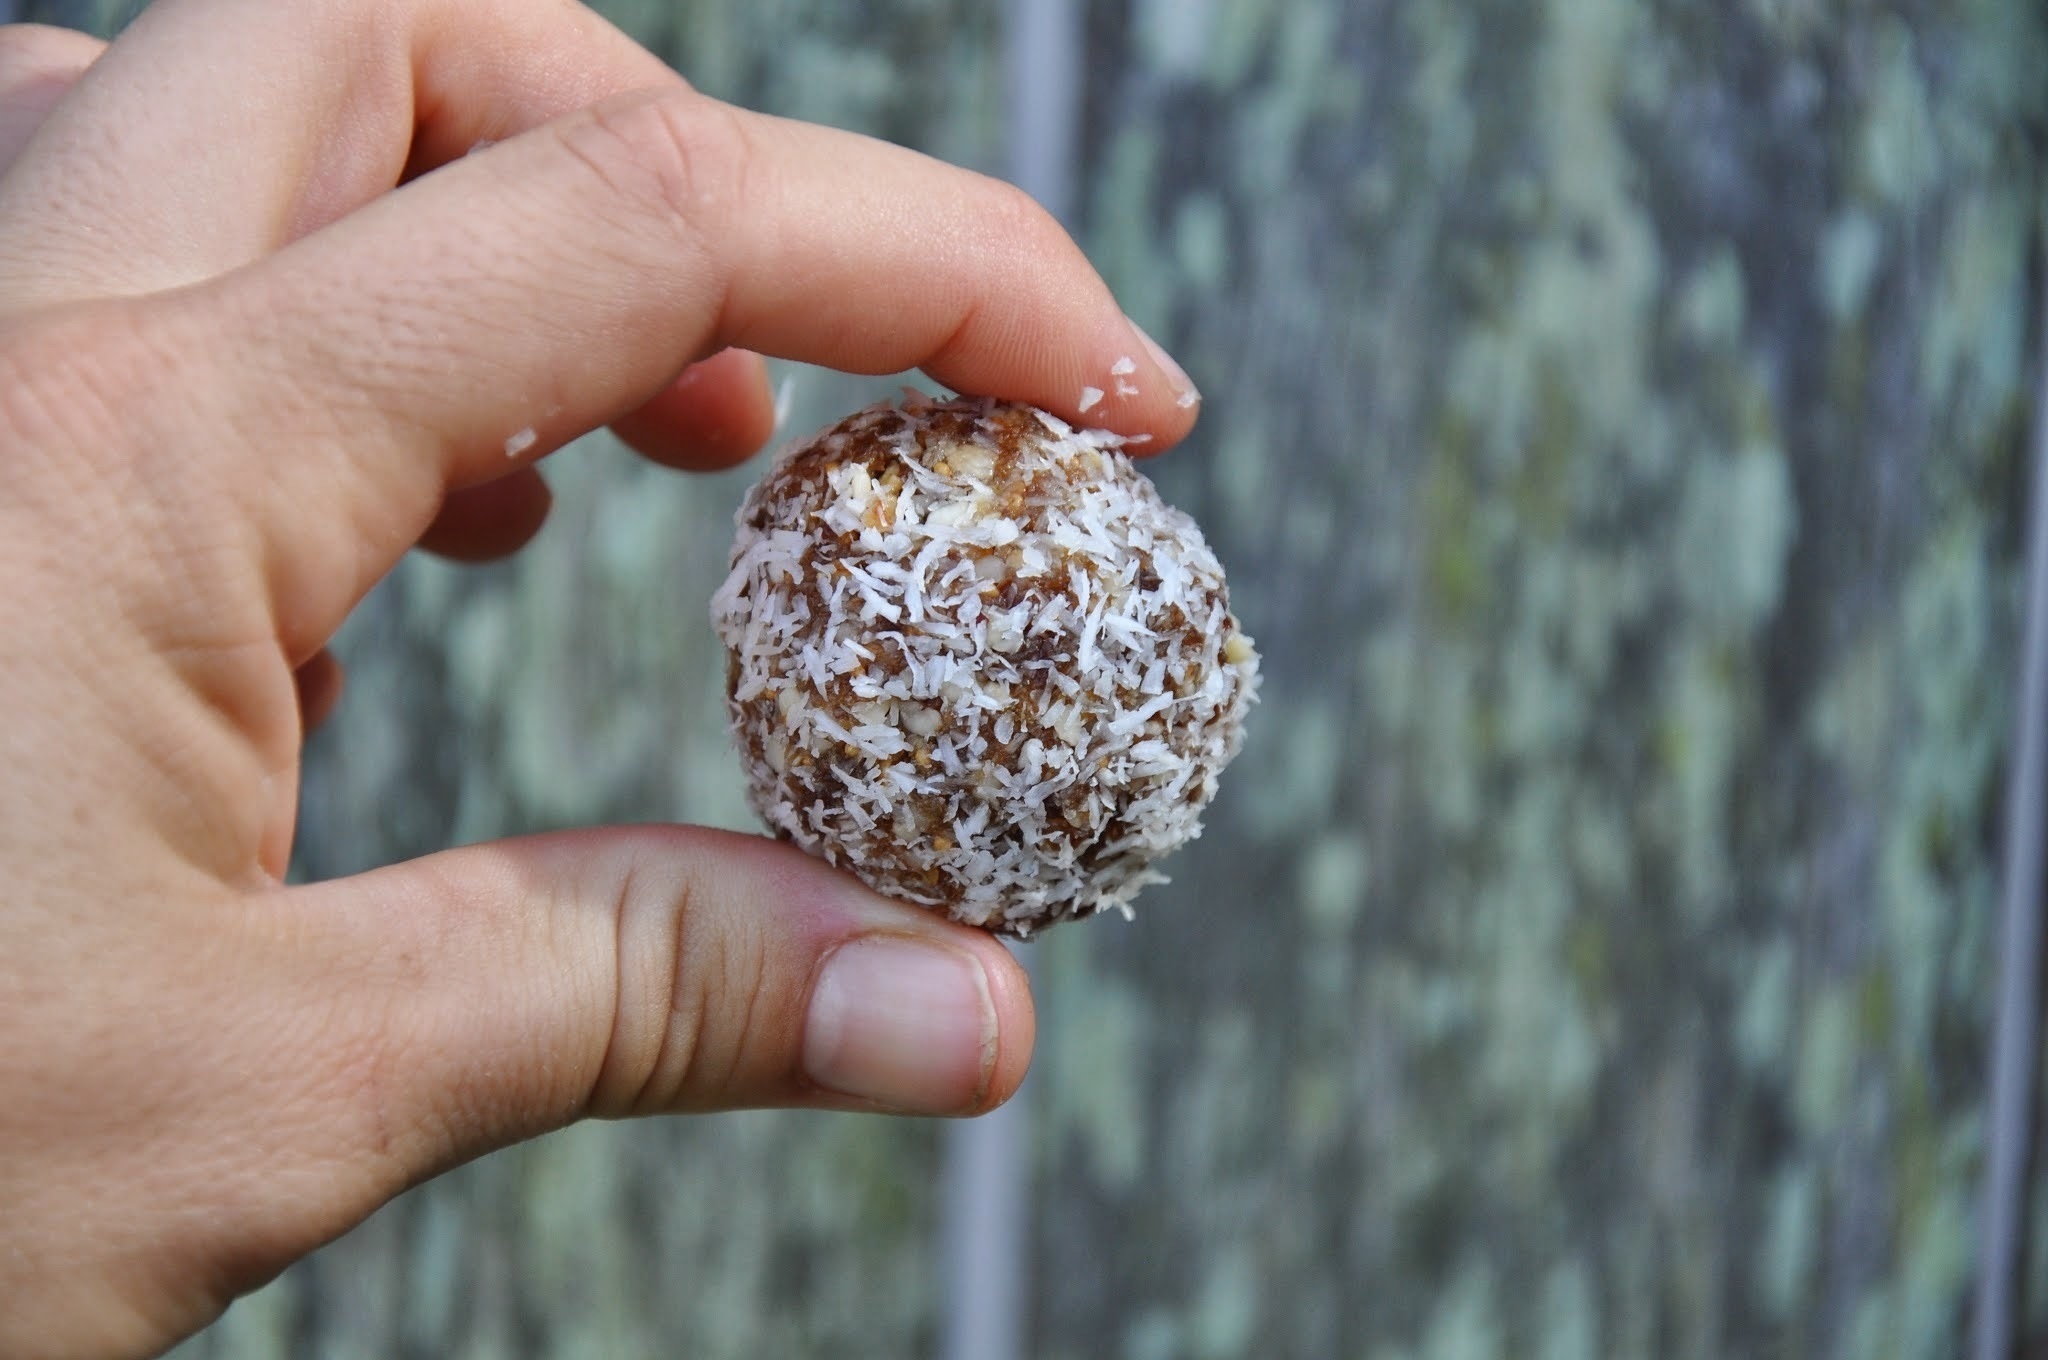 RECIPE: Going nuts for apricot treaty balls! (Only 4 ingredients in the thermomix)